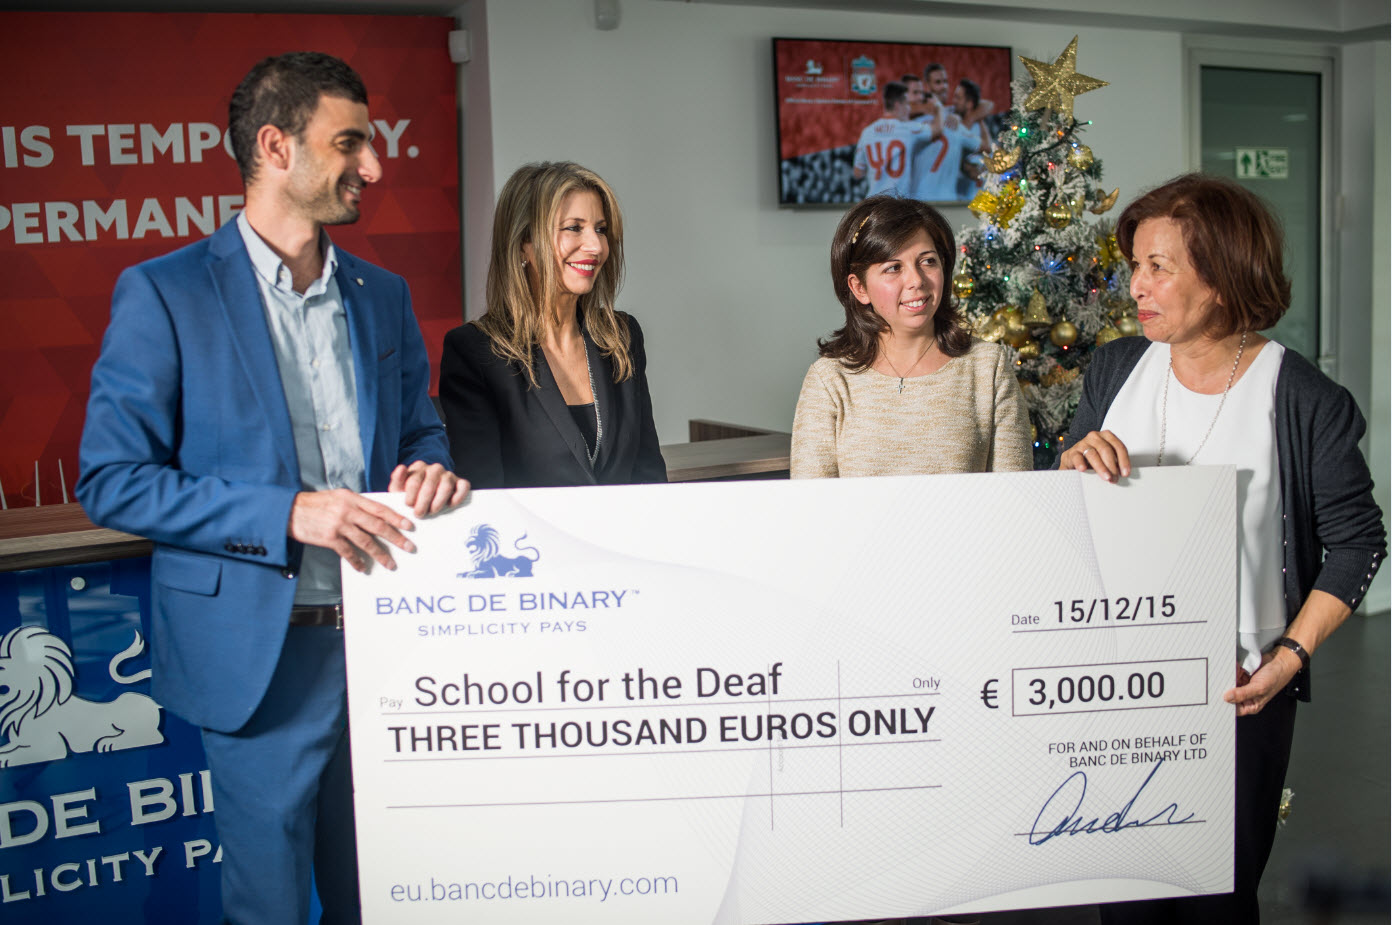 Banc De Binary Gives Generous Donation To Deaf School In Cyprus